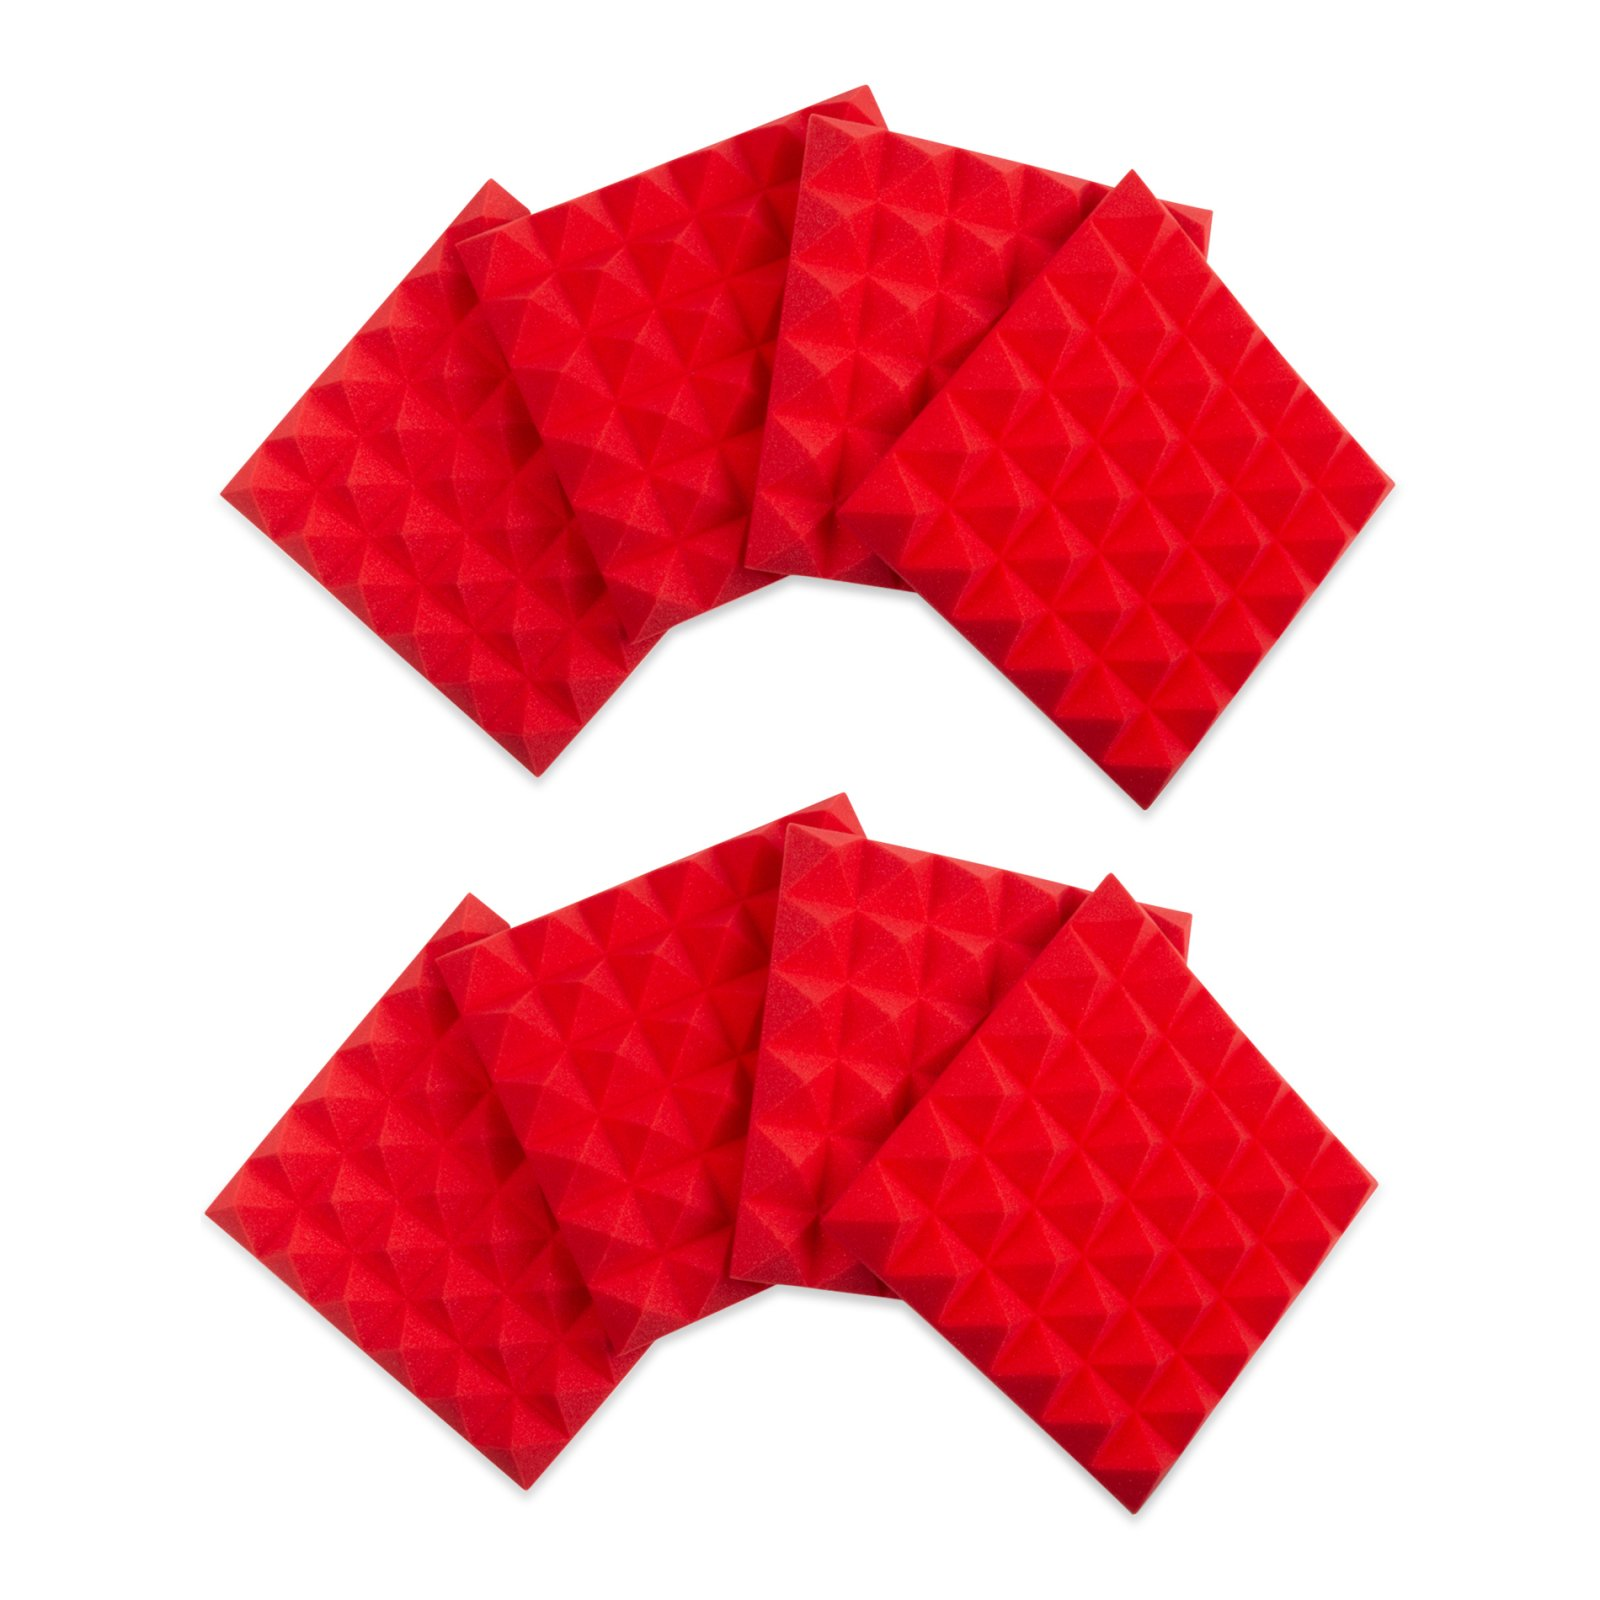 GATOR GFW-ACPNL1212PRED-8PK 8-PACK OF RED 12x12 ACOUSTIC PYRAMID PANEL